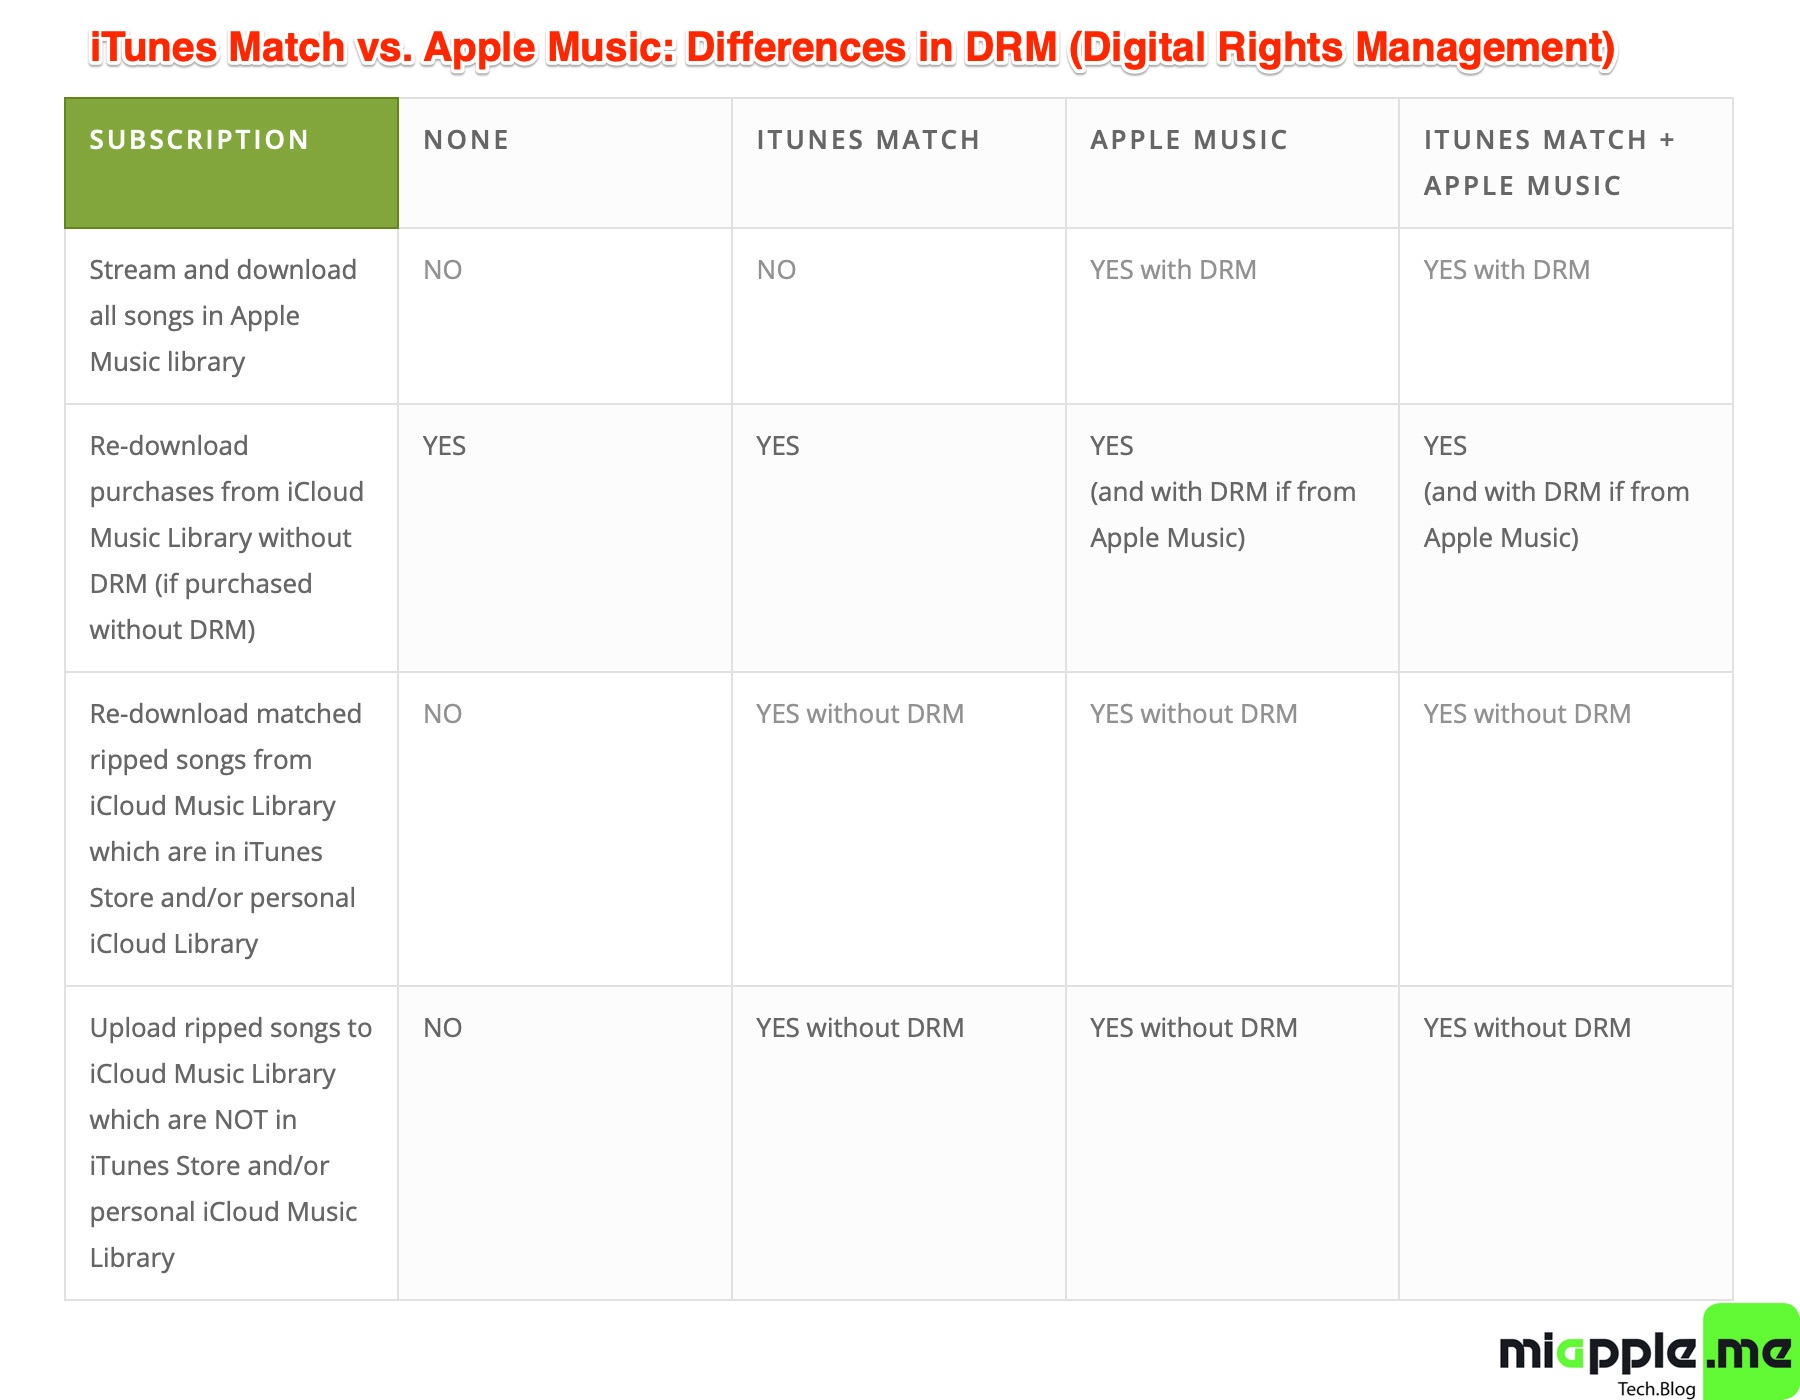 iTunes Match vs. Apple Music Difference in DRM Digital Rights Management